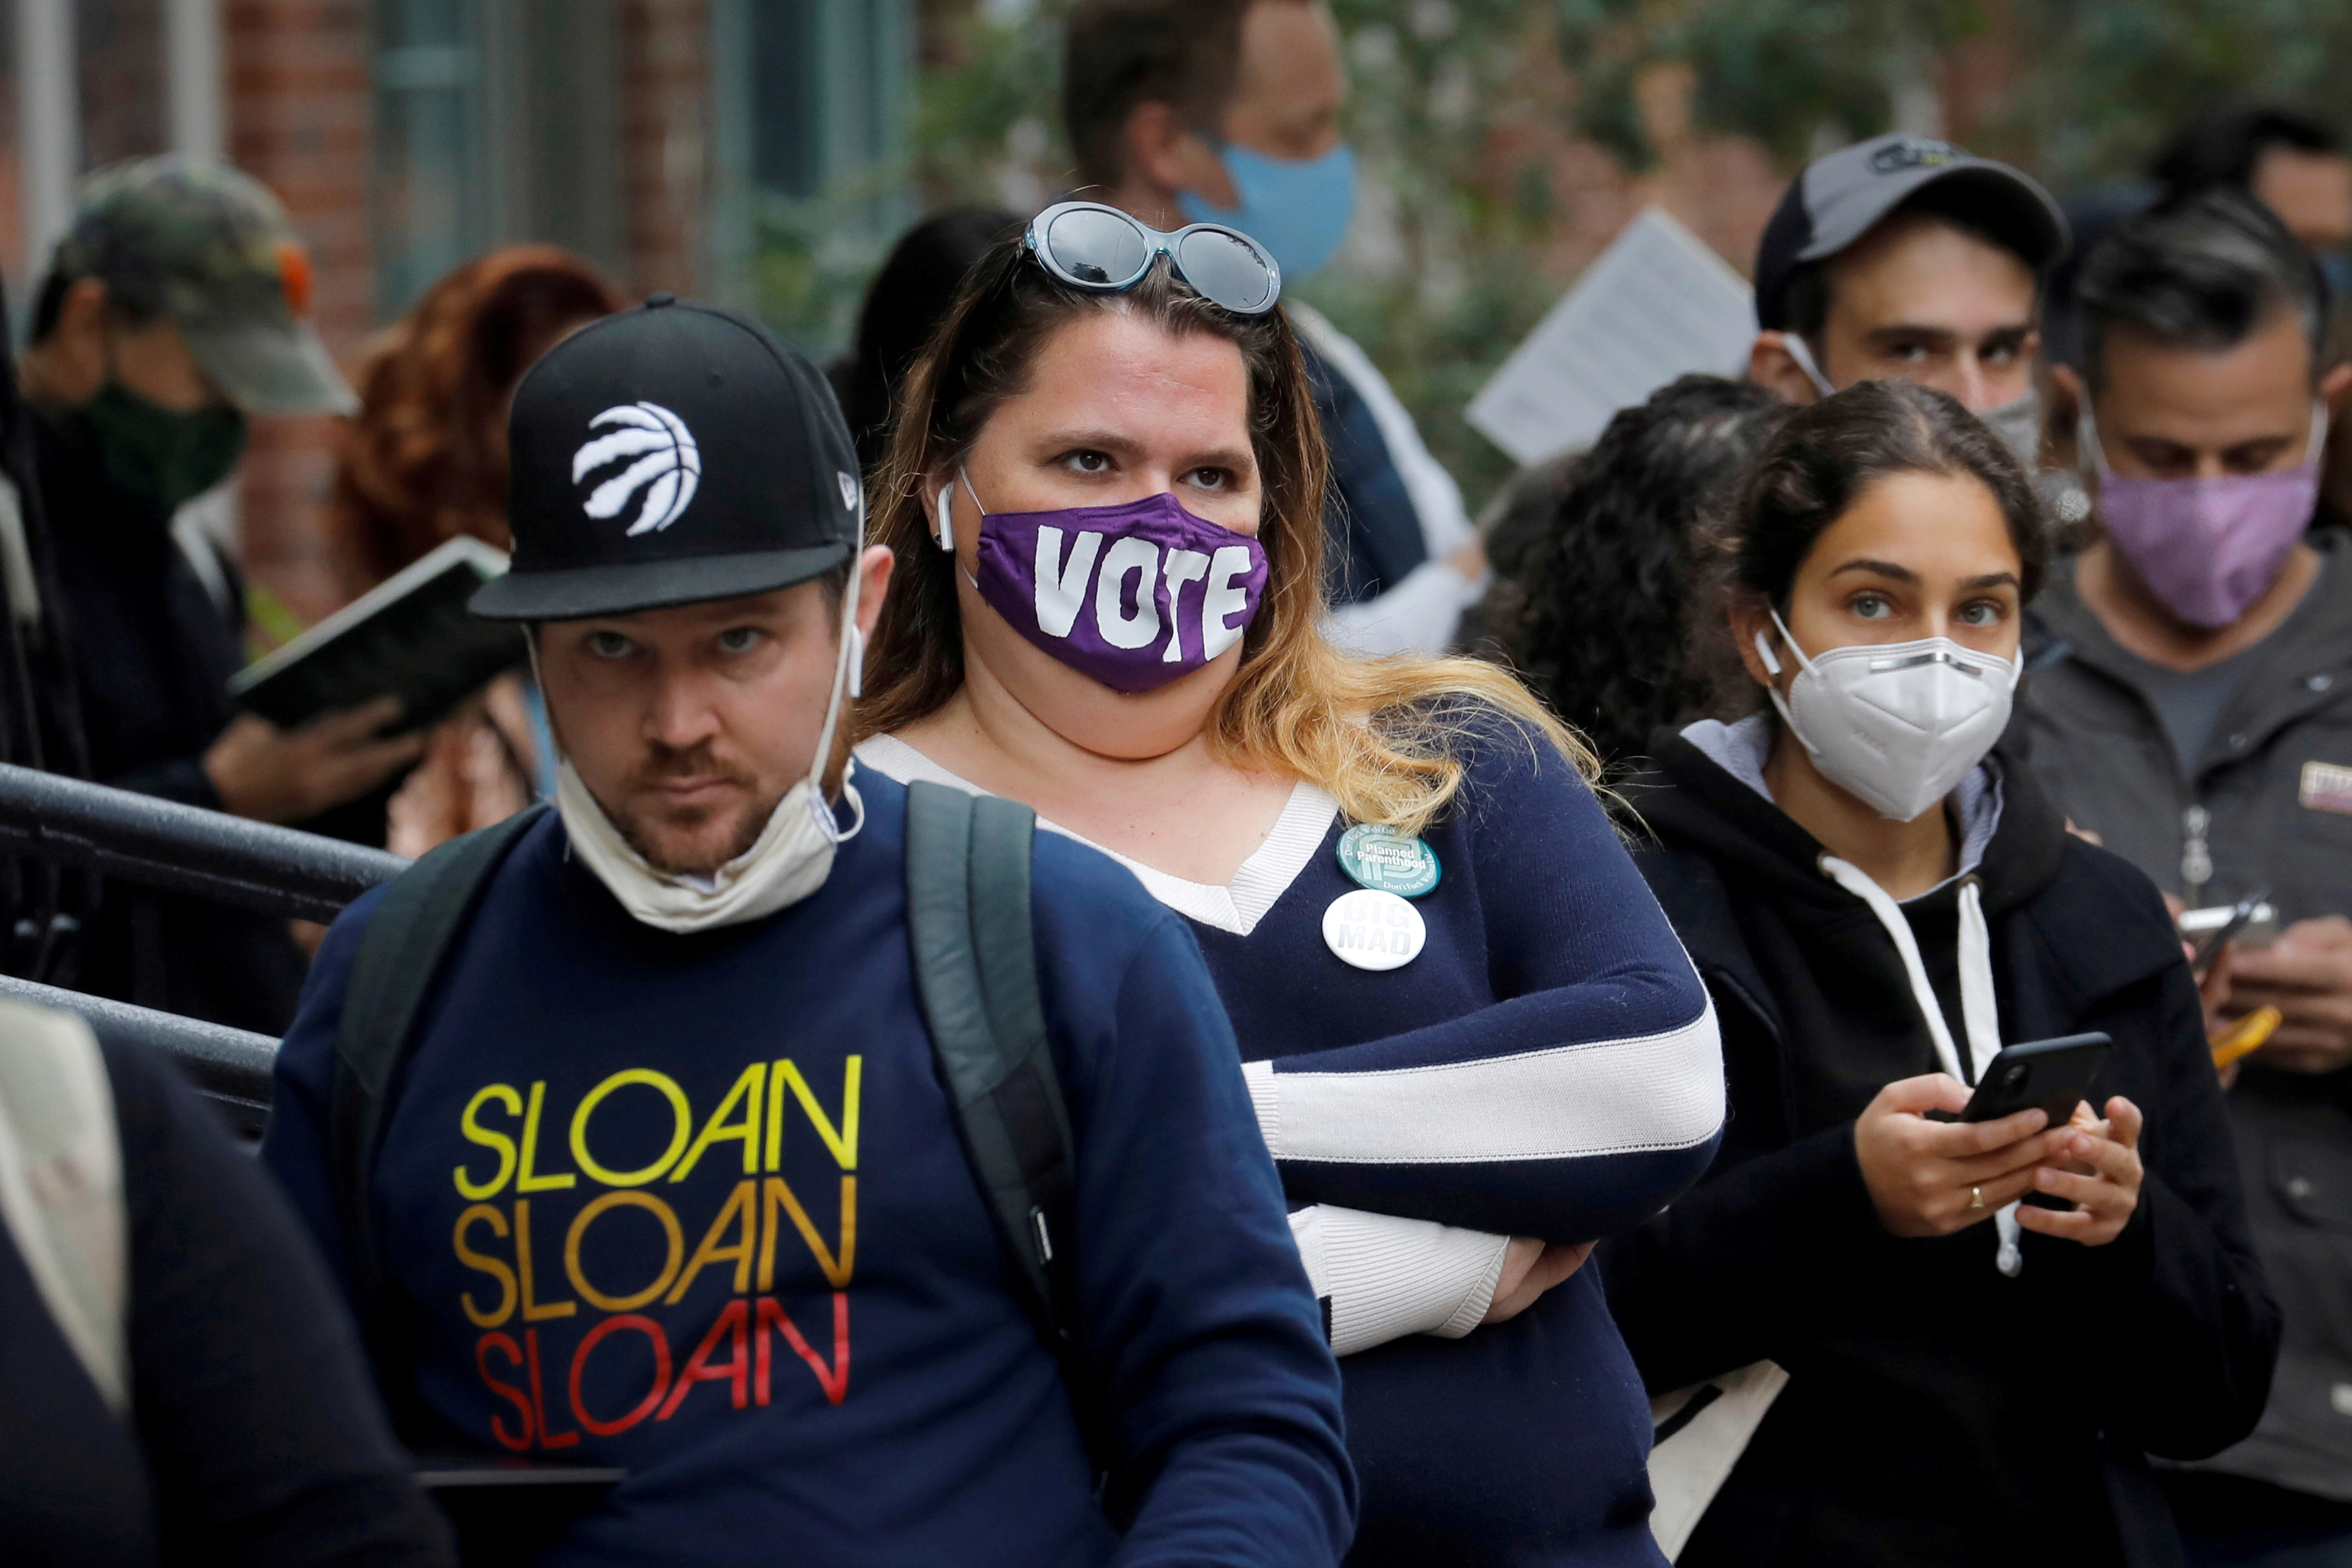 Voters wait in line for hours, including some who received sandwiches from volunteers in Brooklyn, to cast their ballots during early voting in the Brooklyn borough of New York City, New York, U.S., October 27, 2020. REUTERS/Mike Segar/File Photo